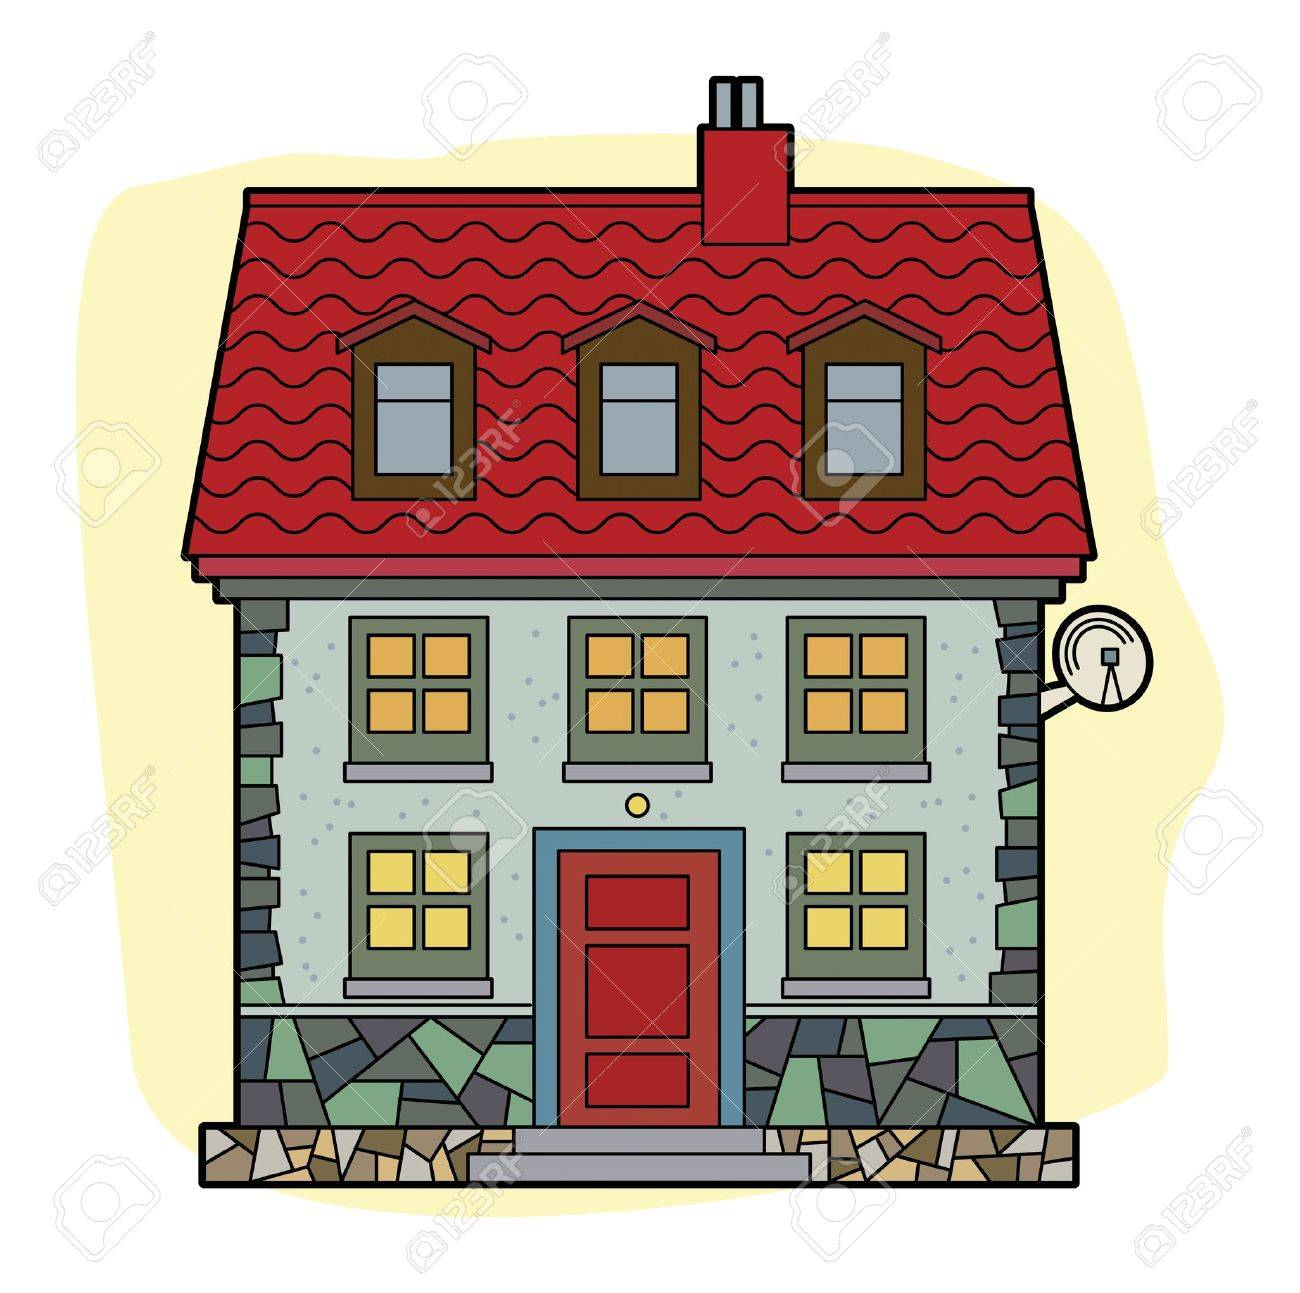 House with red roof Stock Vector - 20172064